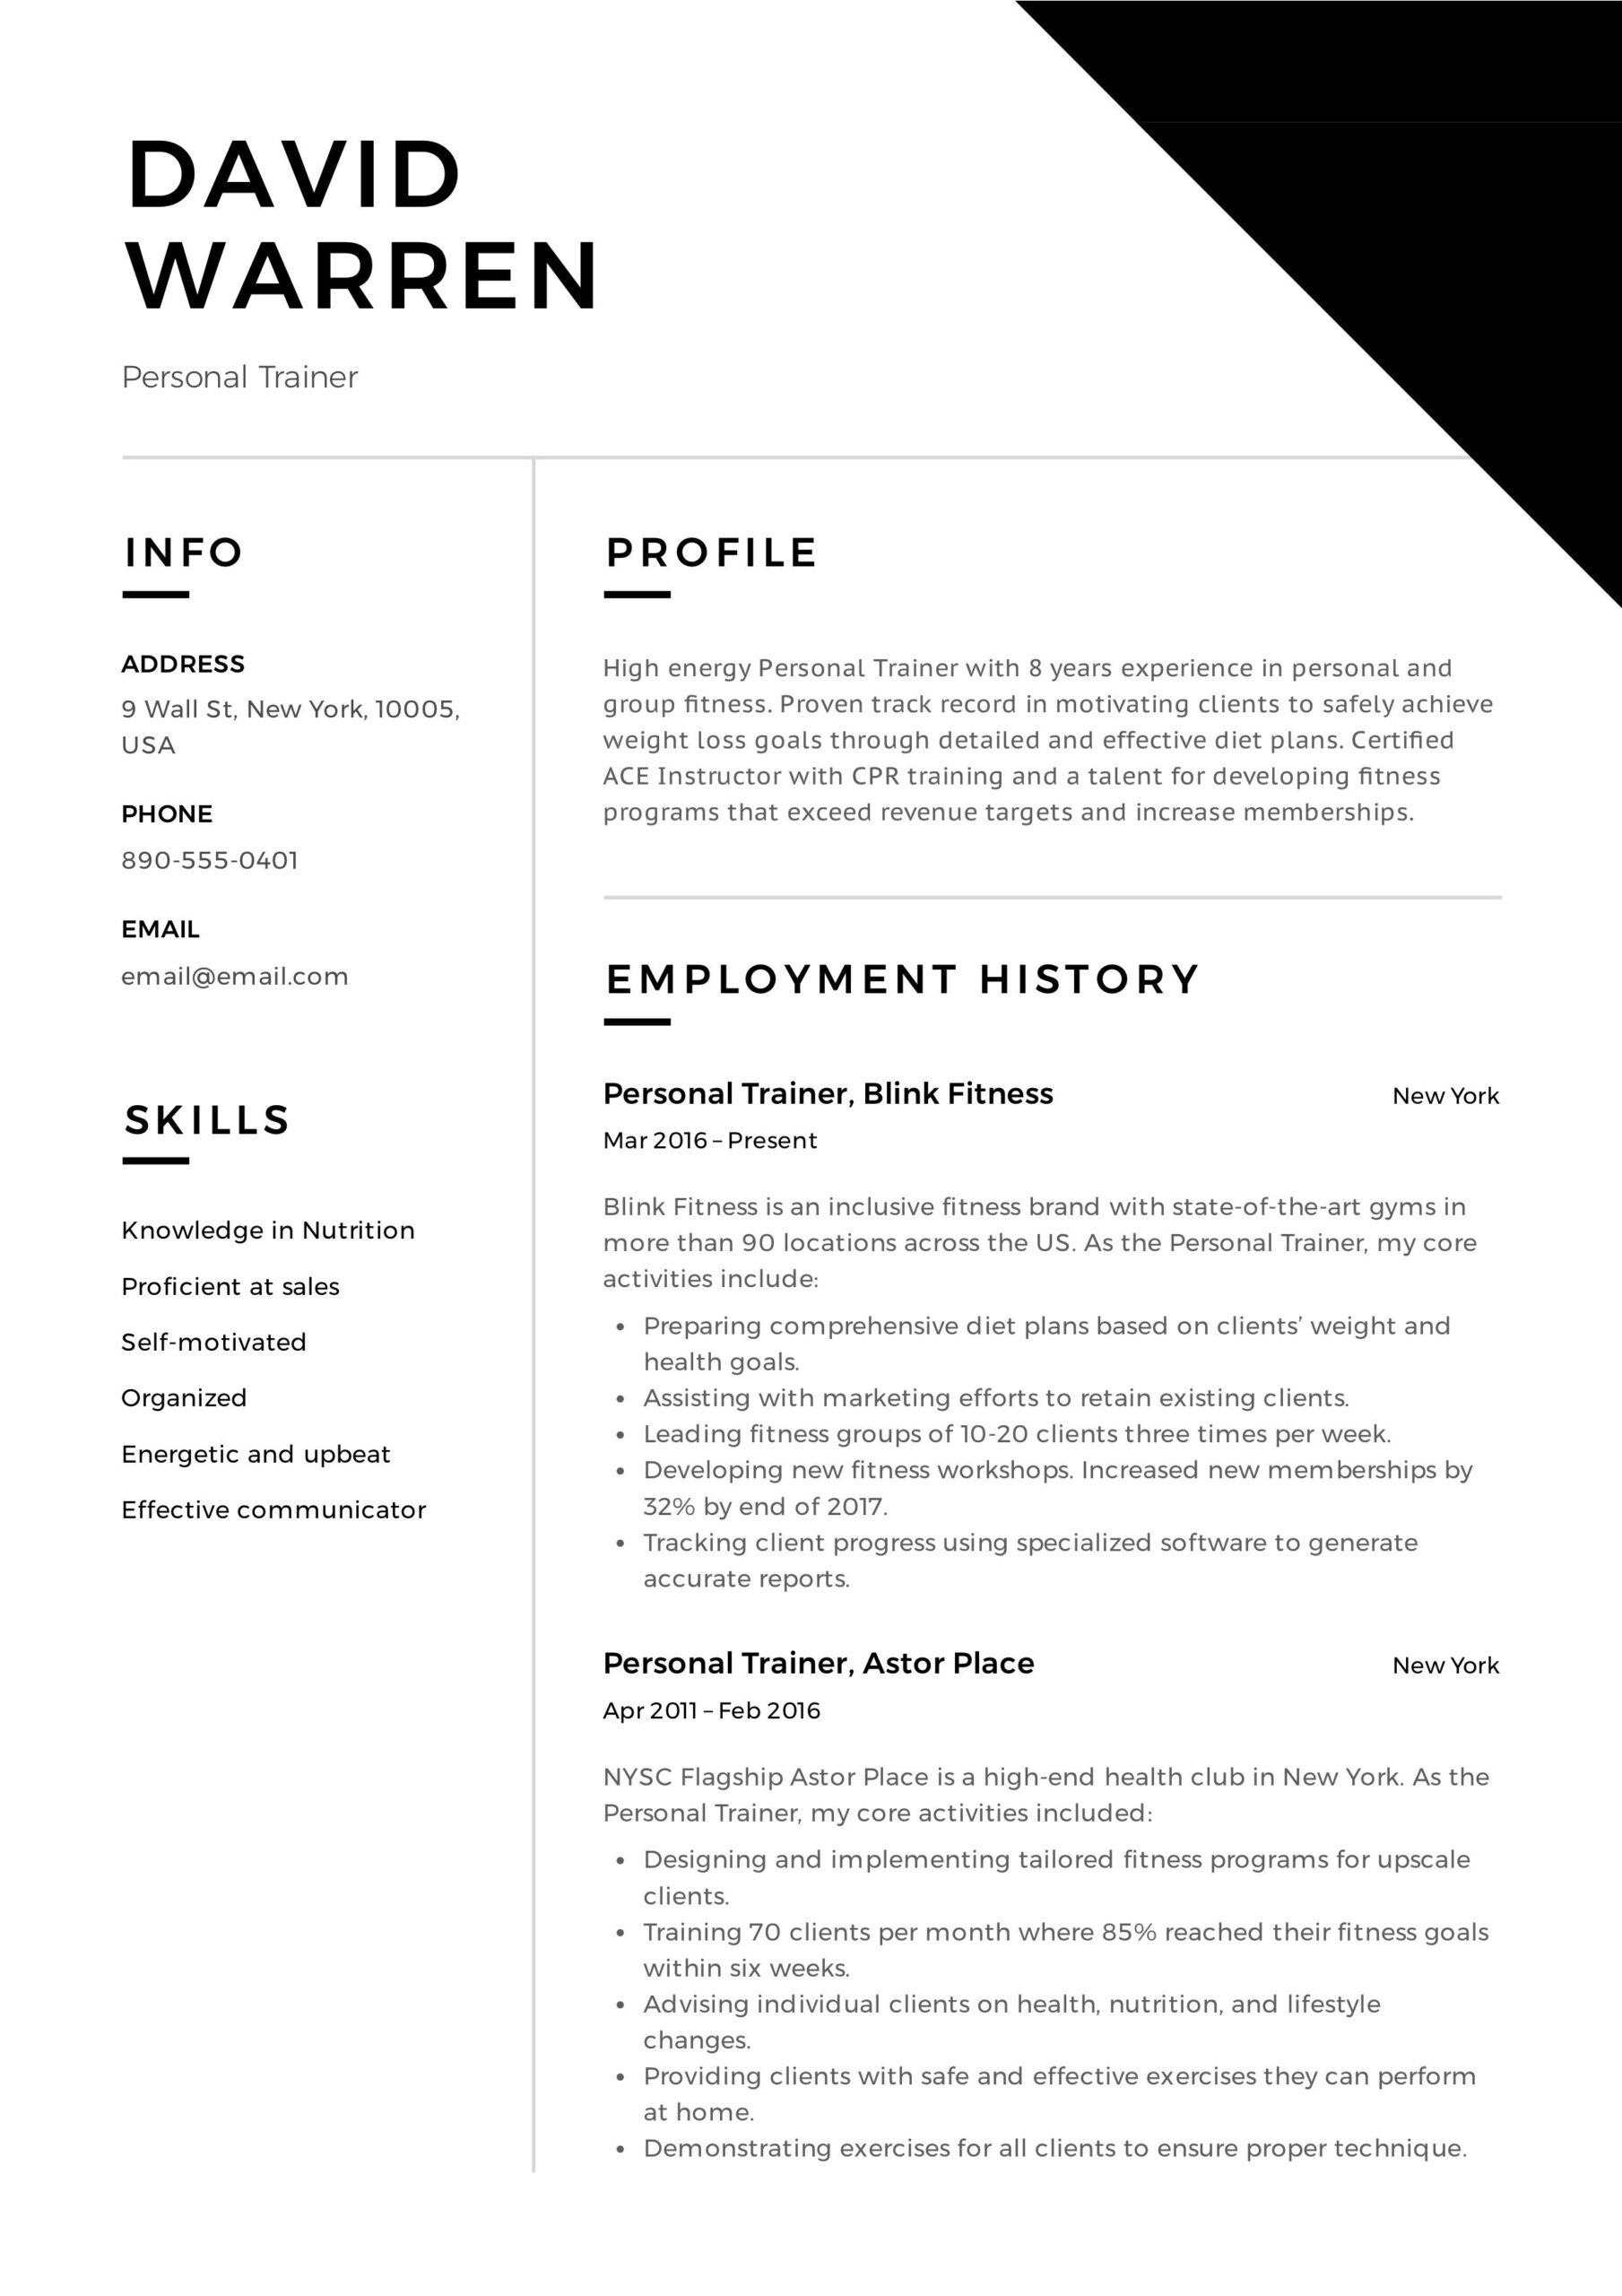 personal trainer resume event planner professional examples section on empirion writers Resume Personal Section On Resume